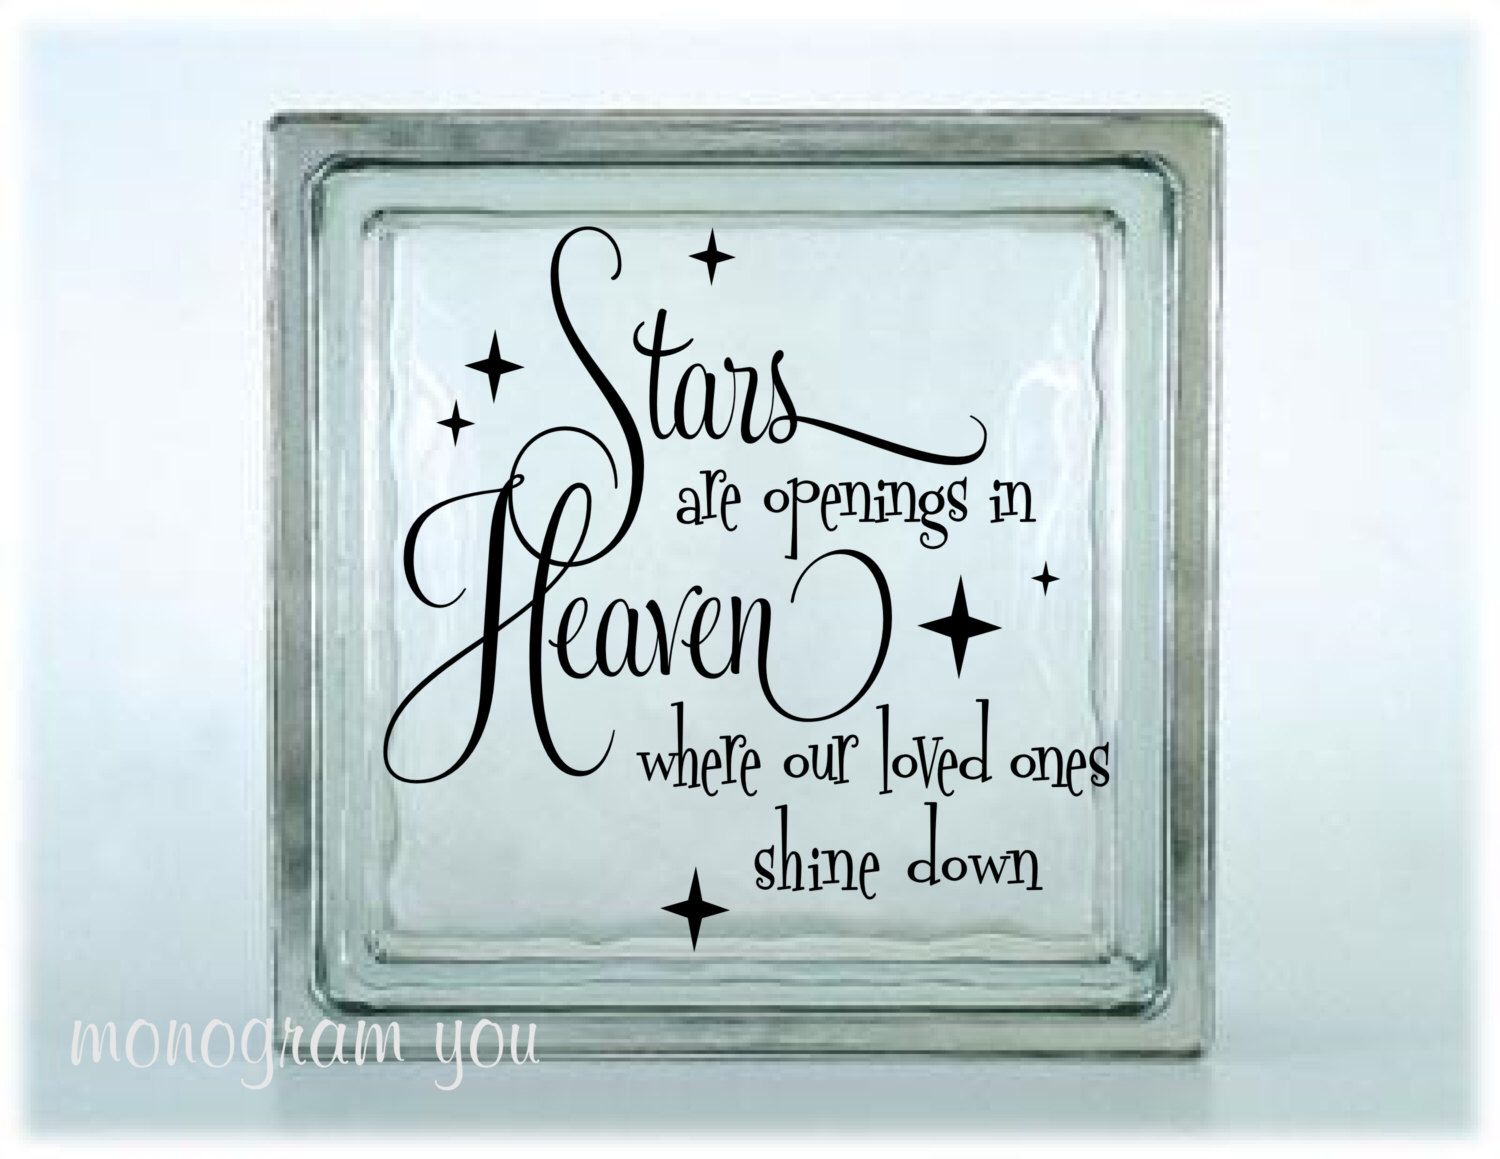 Glass Block Vinyl Decal Stars Are Openings In Heaven Where Our - Glass block vinyl decals